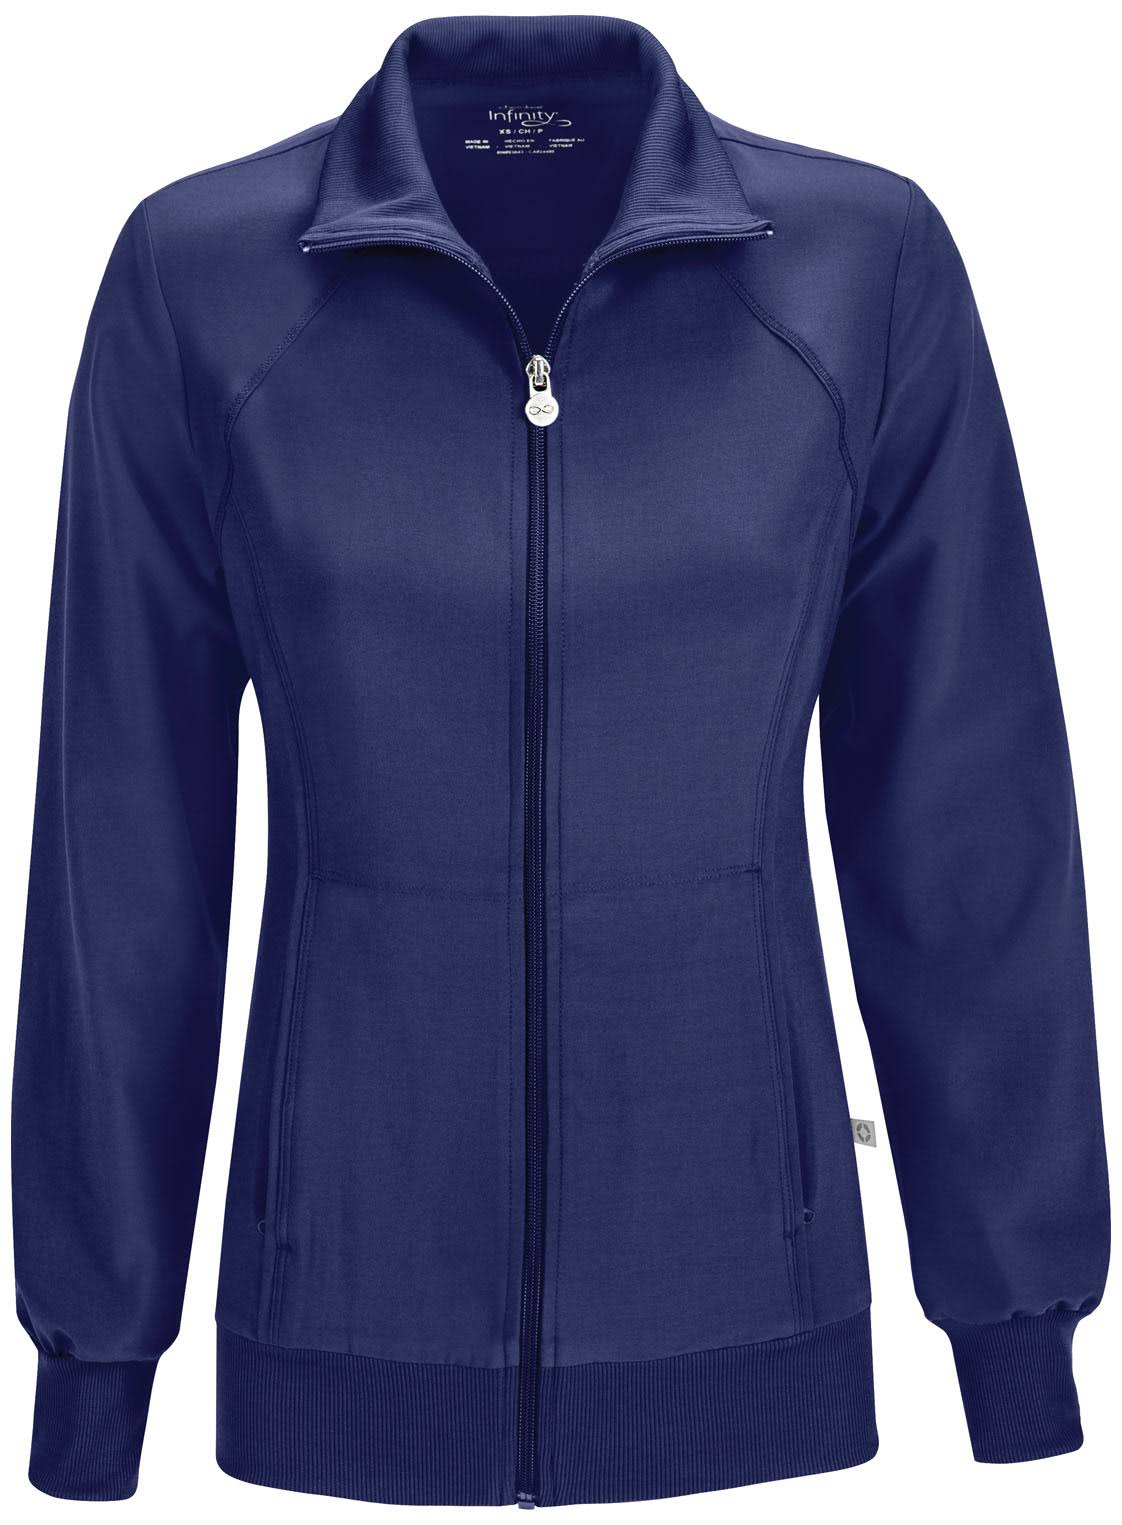 Cherokee Infinity Zip Front Warm-Up Jacket - Navy